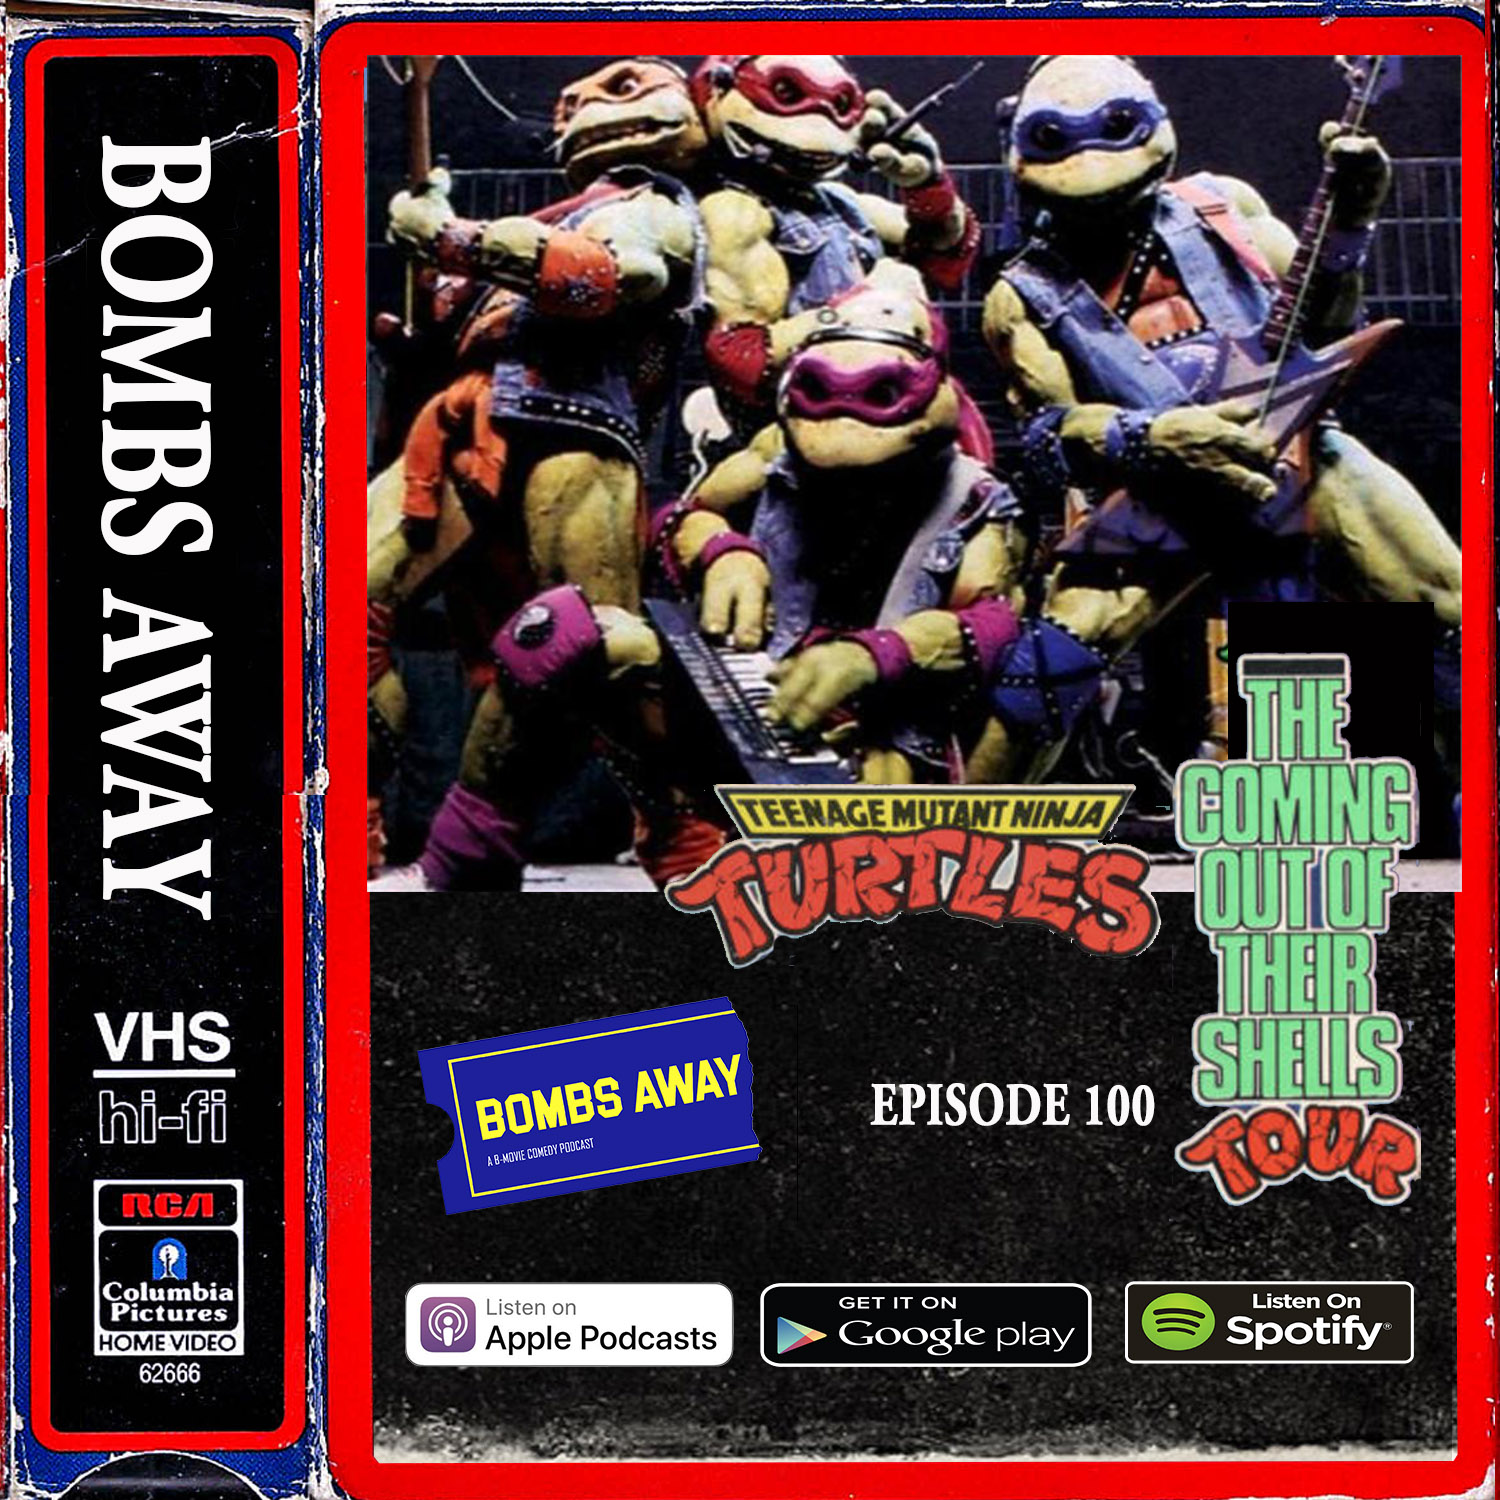 Episode 100 - Teenage Mutant Ninja Turtles: Coming Out of Their Shells Tour (1990)